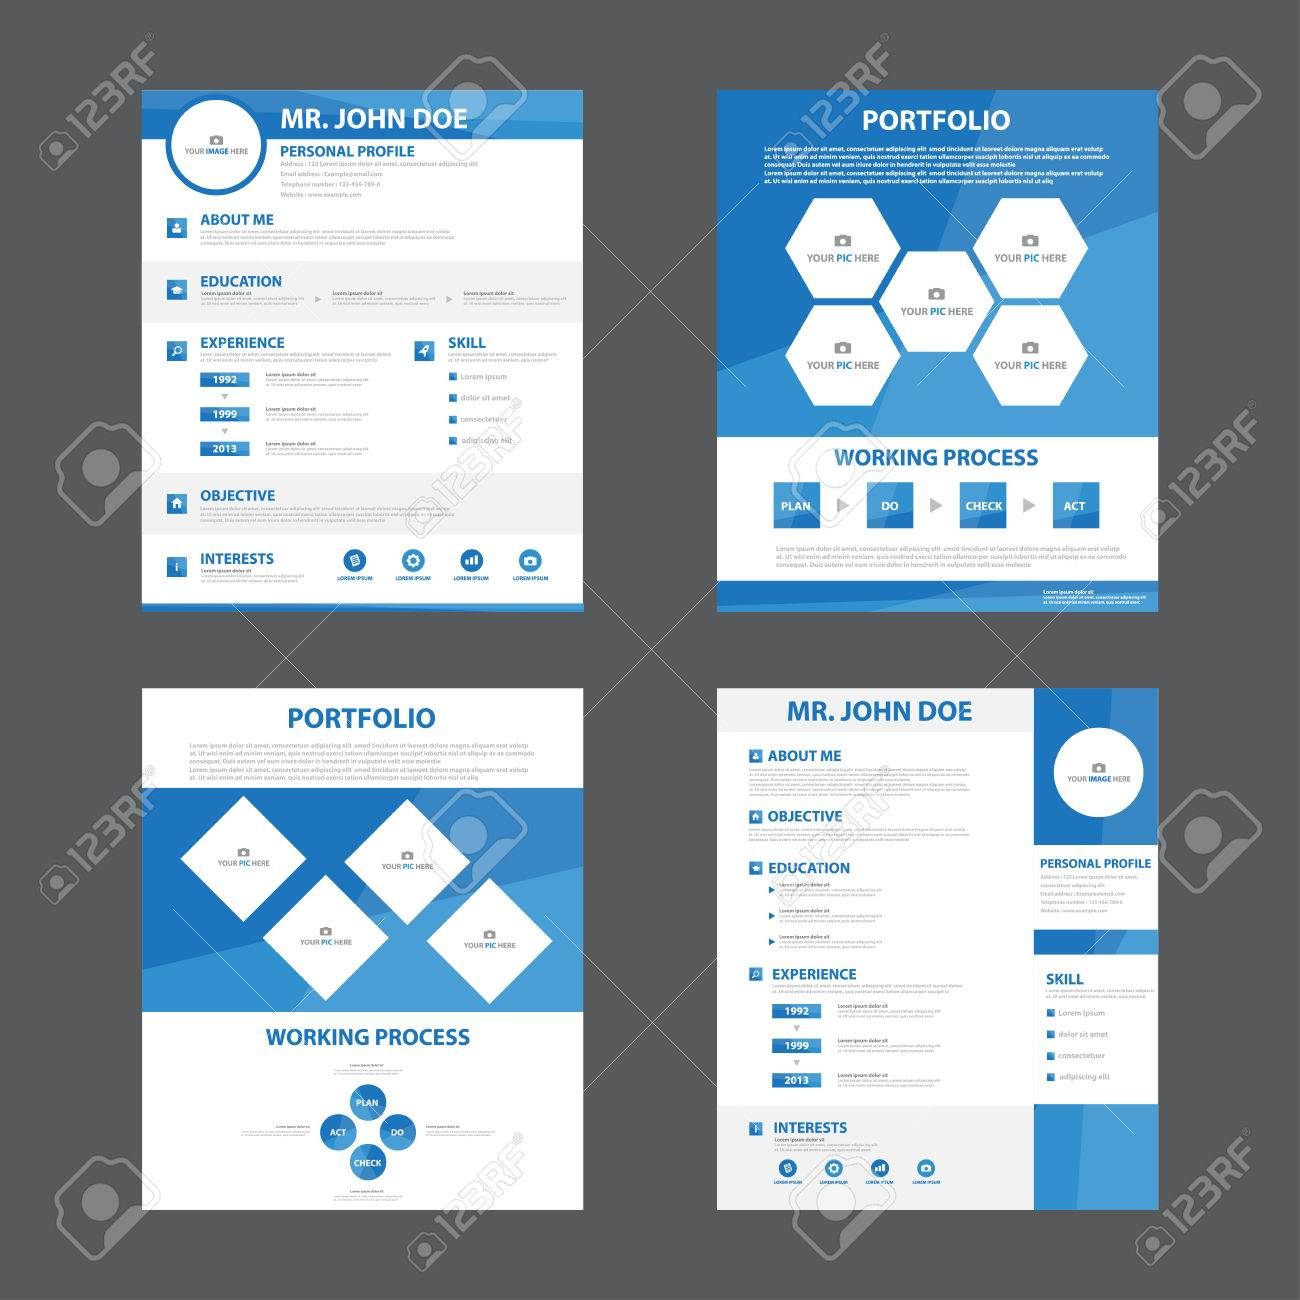 Smart creative resume business profile cv vitae template layout smart creative resume business profile cv vitae template layout flat design for job application advertising marketing friedricerecipe Choice Image